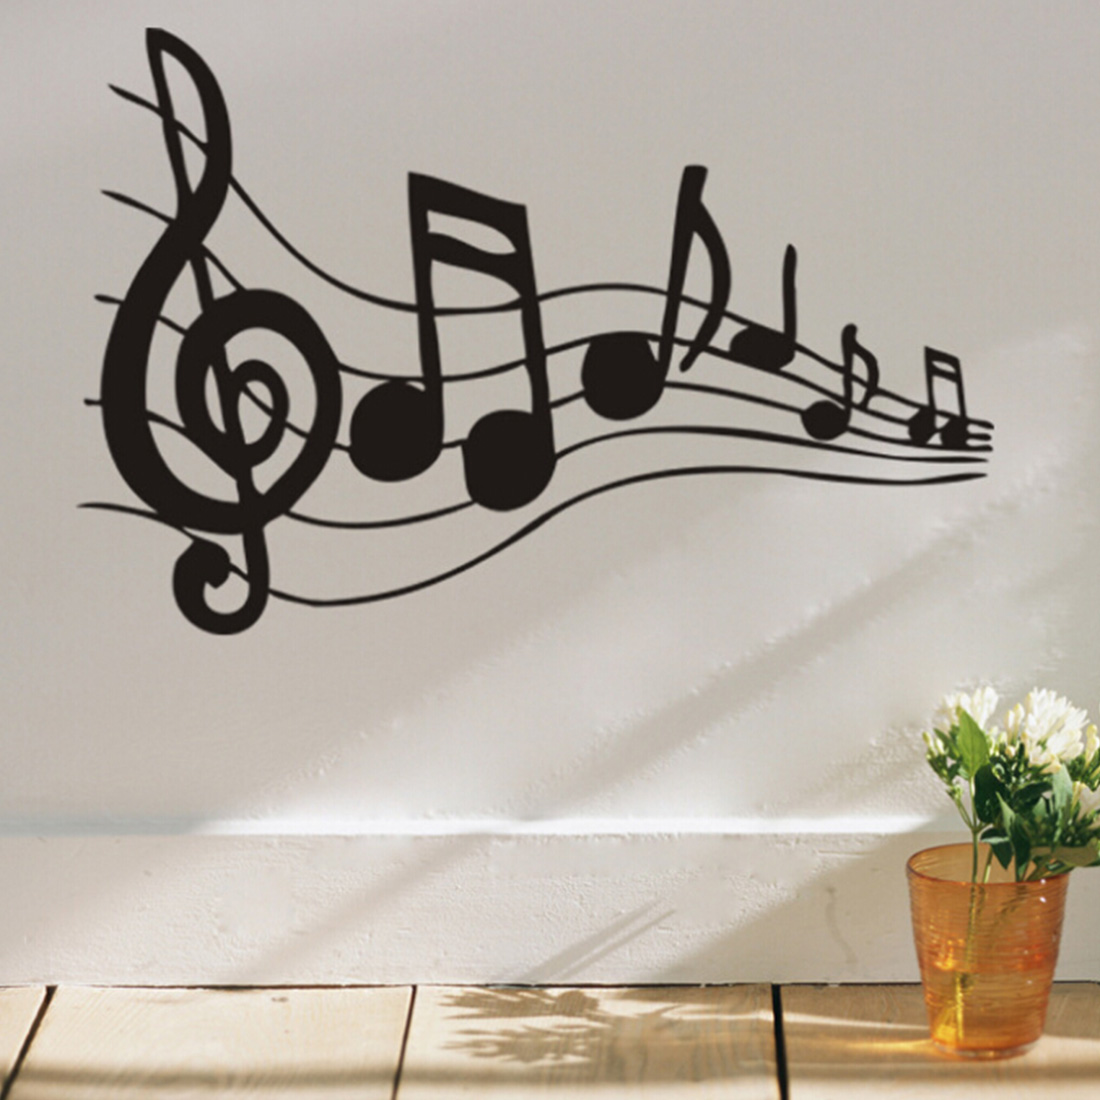 Graffiti wall decal - New Arrival Music Note Pattern Graffiti Wall Home Decor Vinyl Decal Removable Sticker Paper China